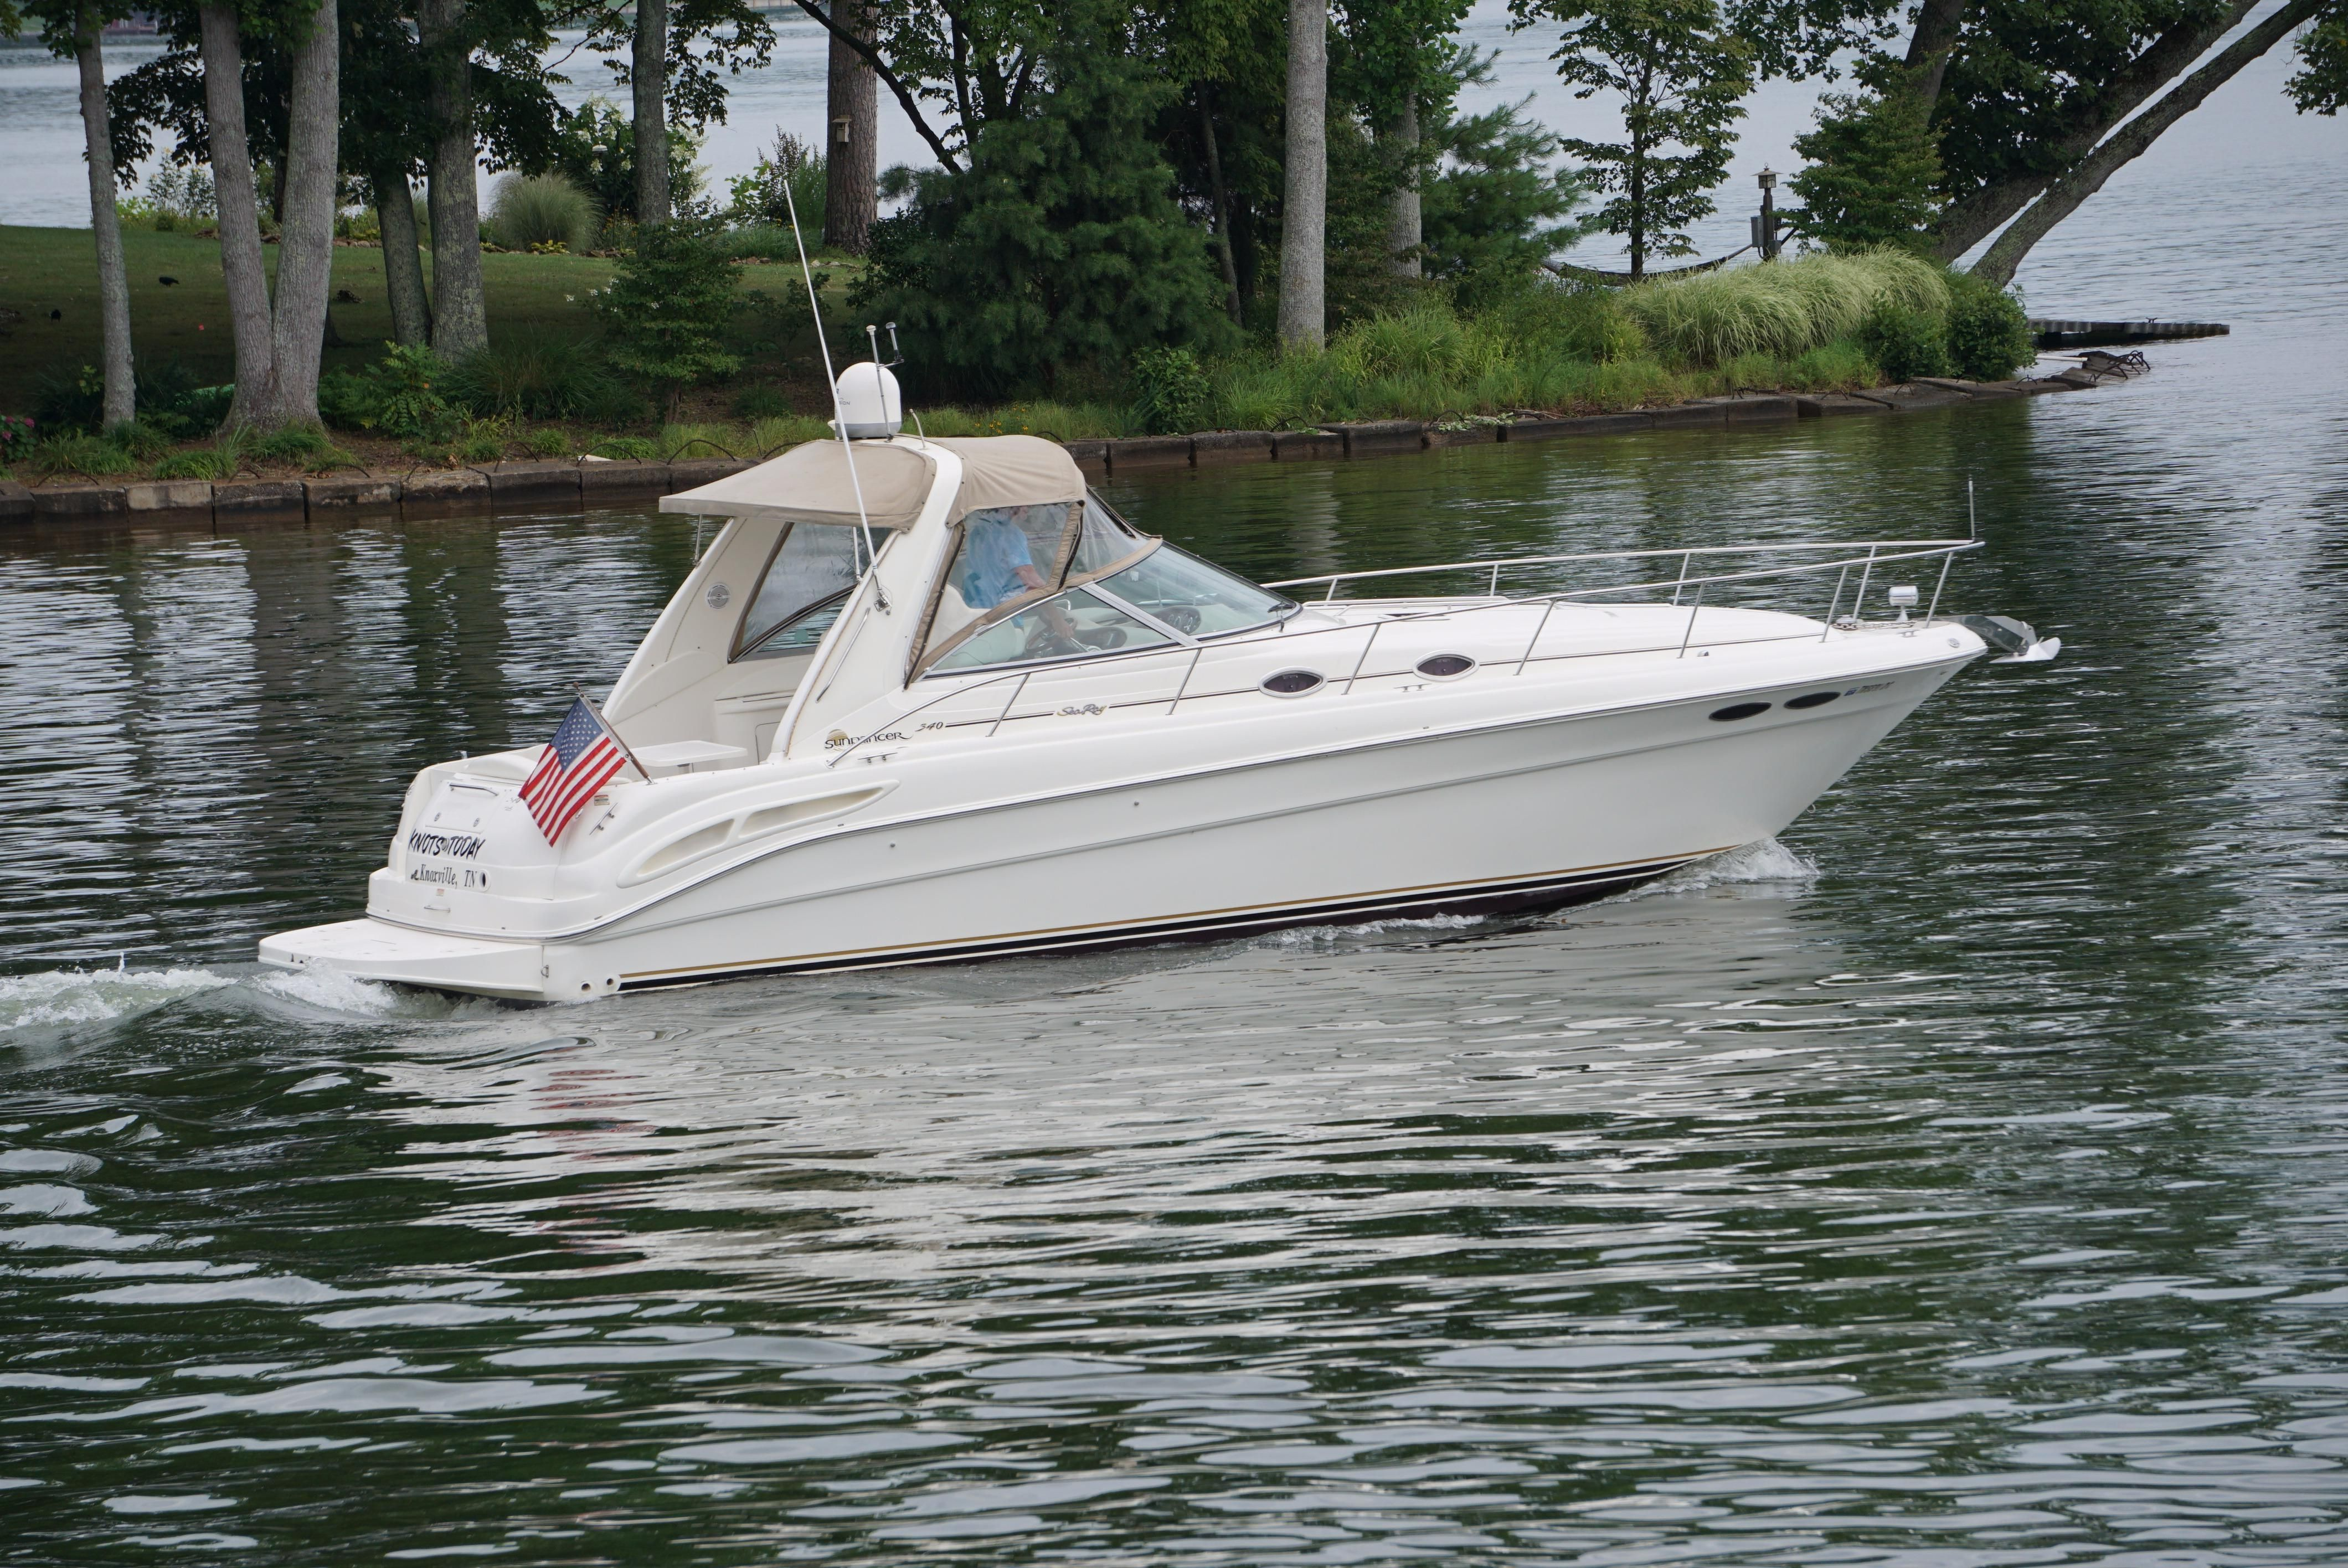 Loudon (TN) United States  city pictures gallery : 2000 Sea Ray 340 Sundancer Power Boat For Sale www.yachtworld.com